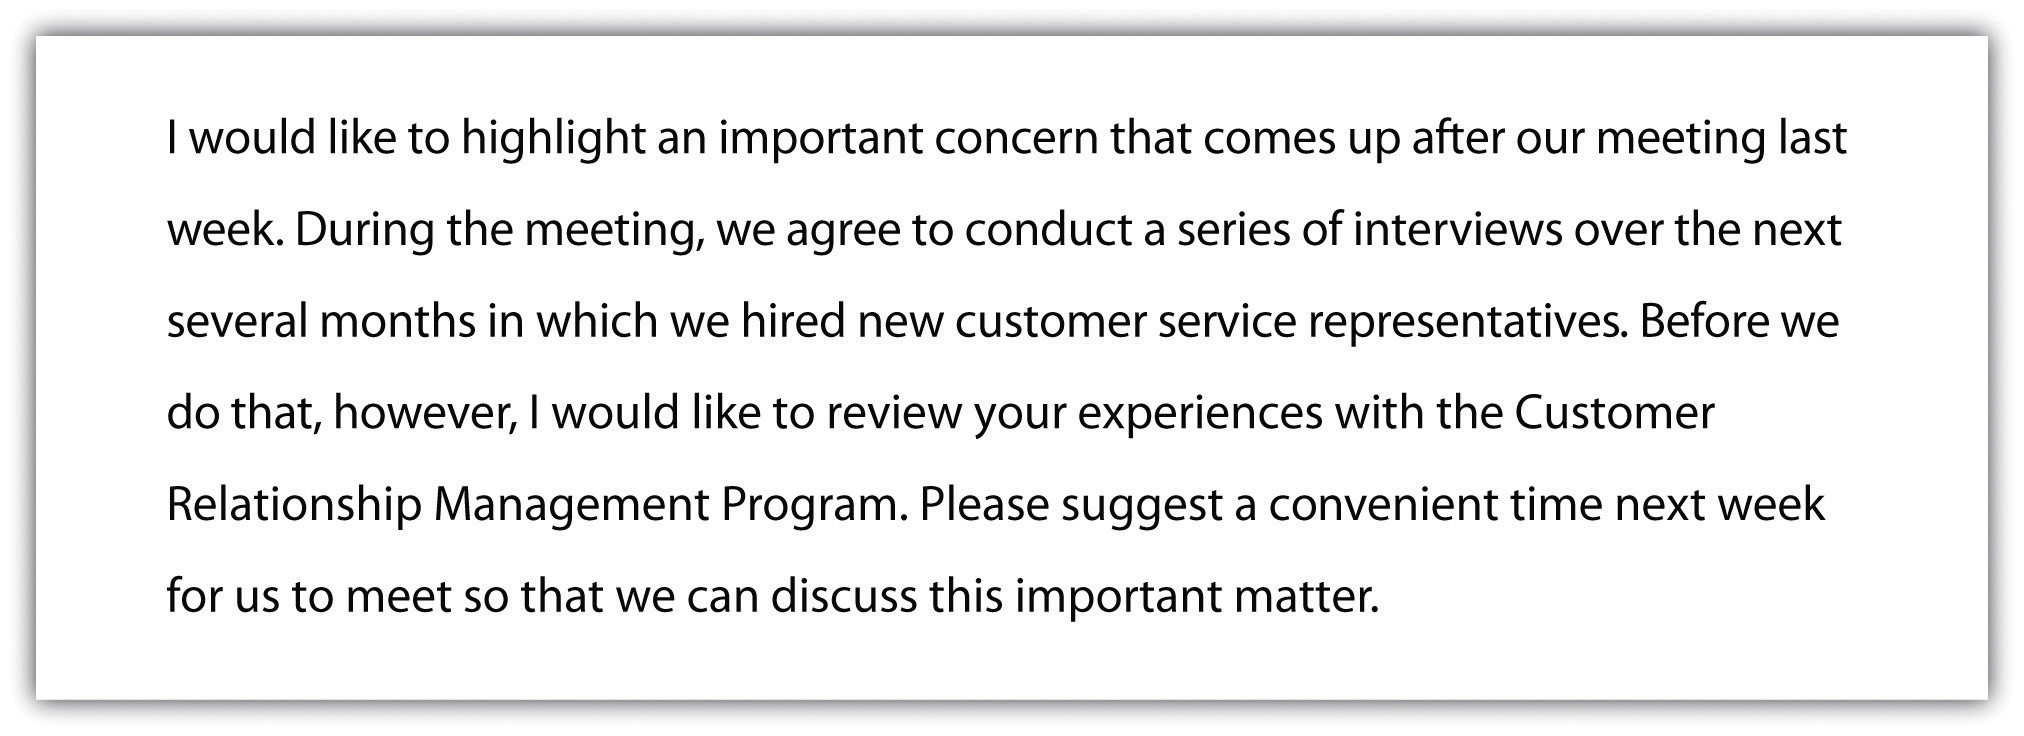 I would like to highlight an important concern that comes up after our meeting last week. During the meeting, we agree to conduct a series of interviews over the next several months in which we hired new customer service representatives. Before we do that, however, I would like to review your experiences with the Customer Relationship Management Program. Please suggest a convenient time next week for us to meet so that we can discuss this important matter.